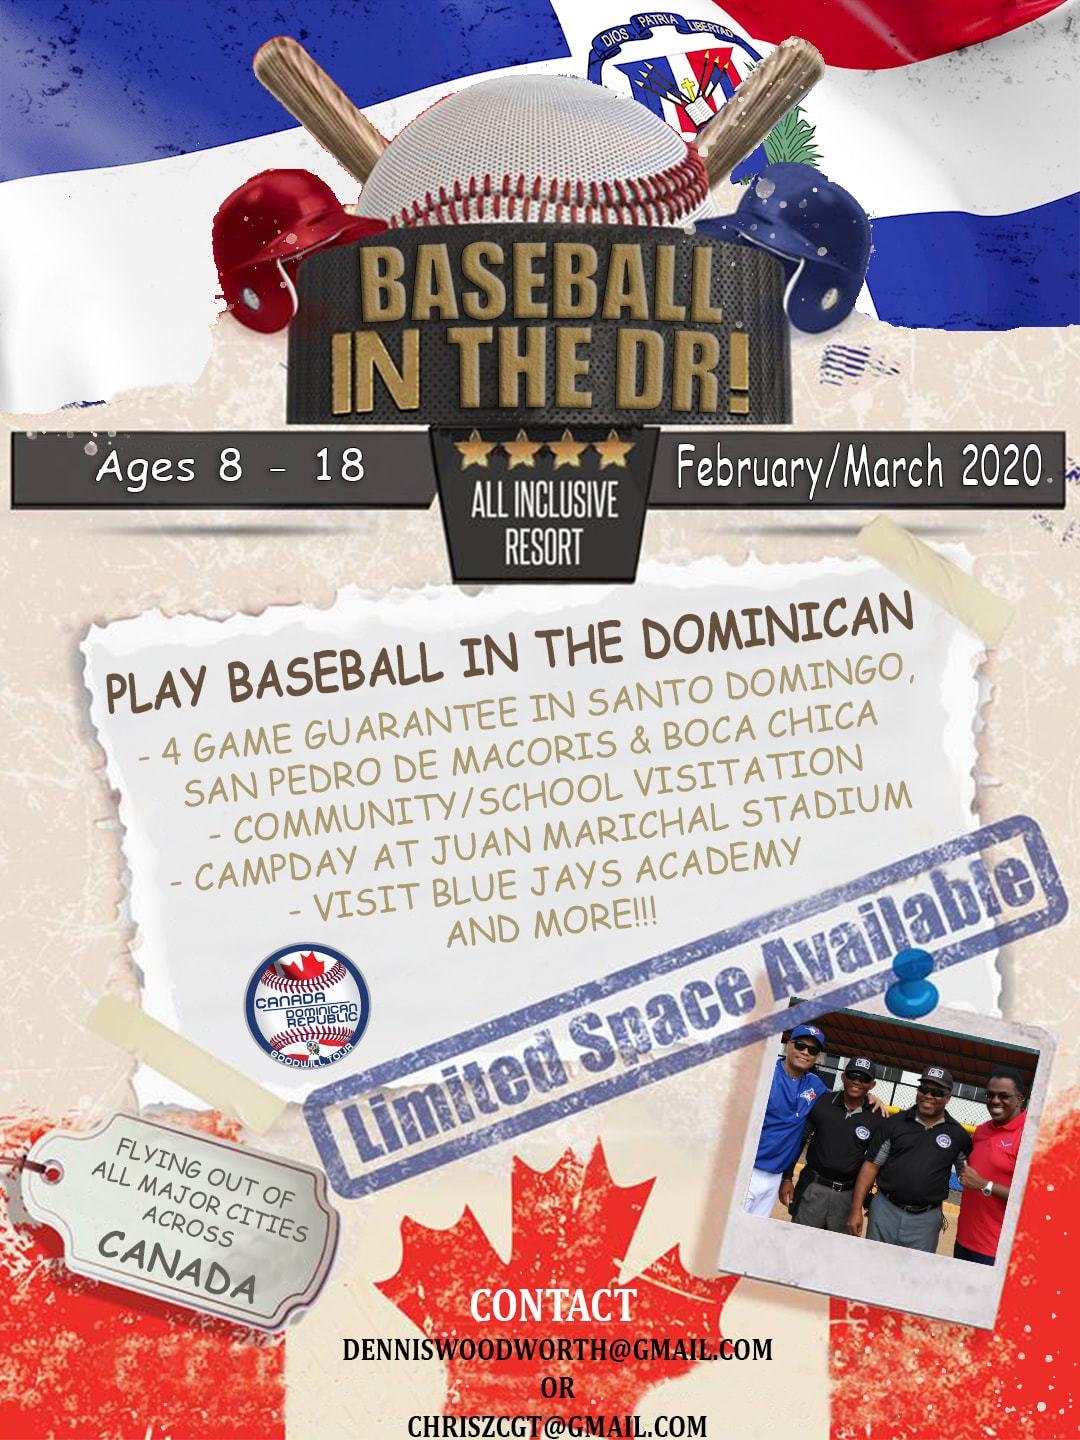 Baseball In DR